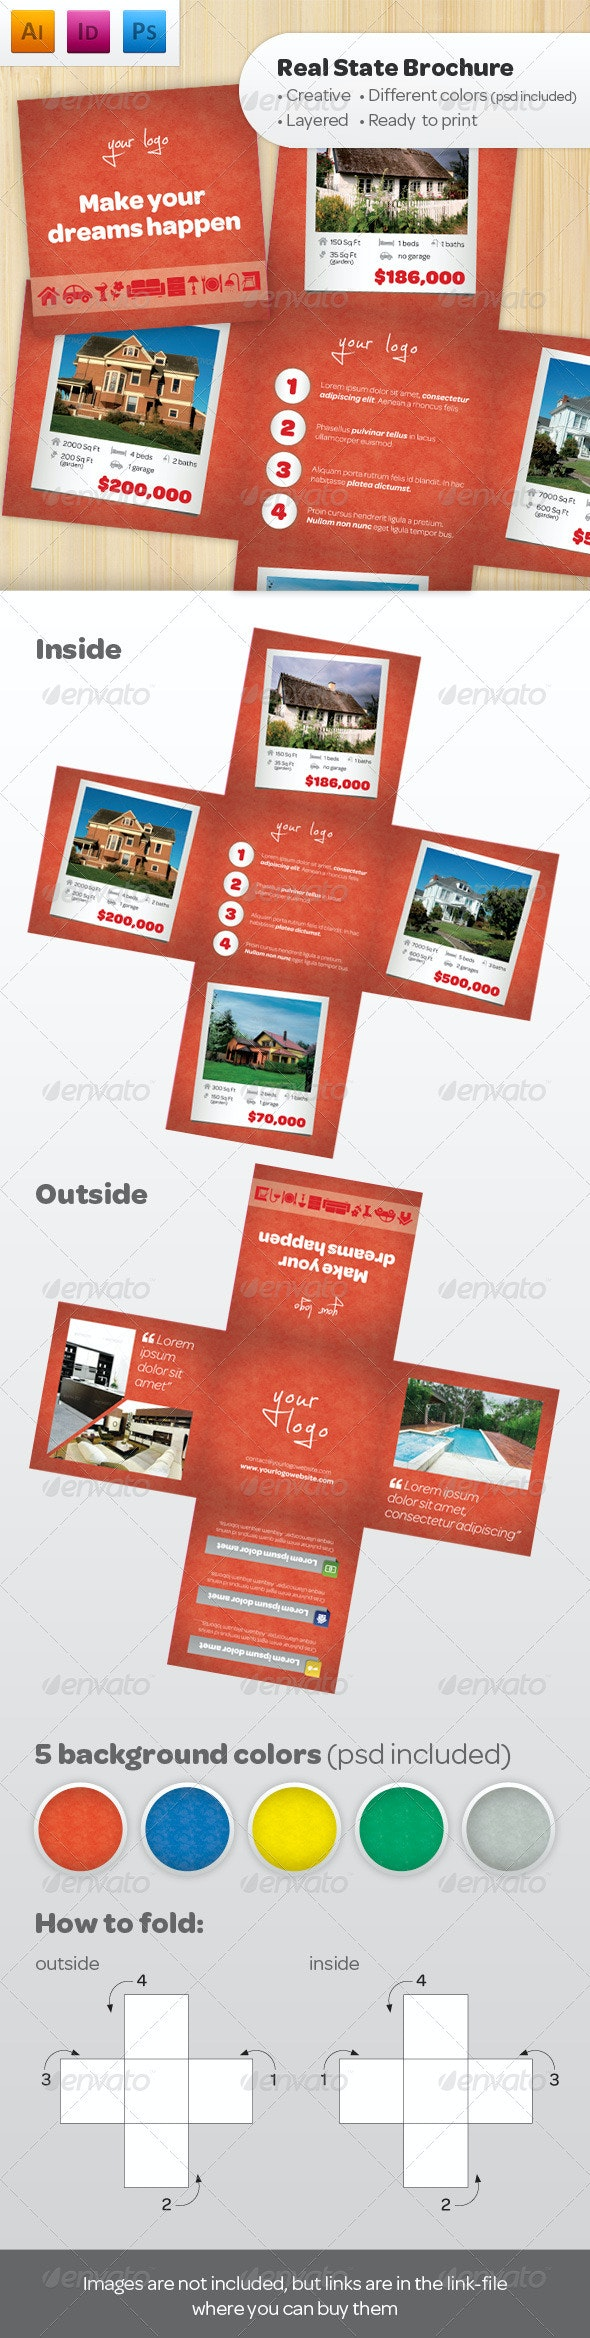 Real State Brochure - Catalogs Brochures